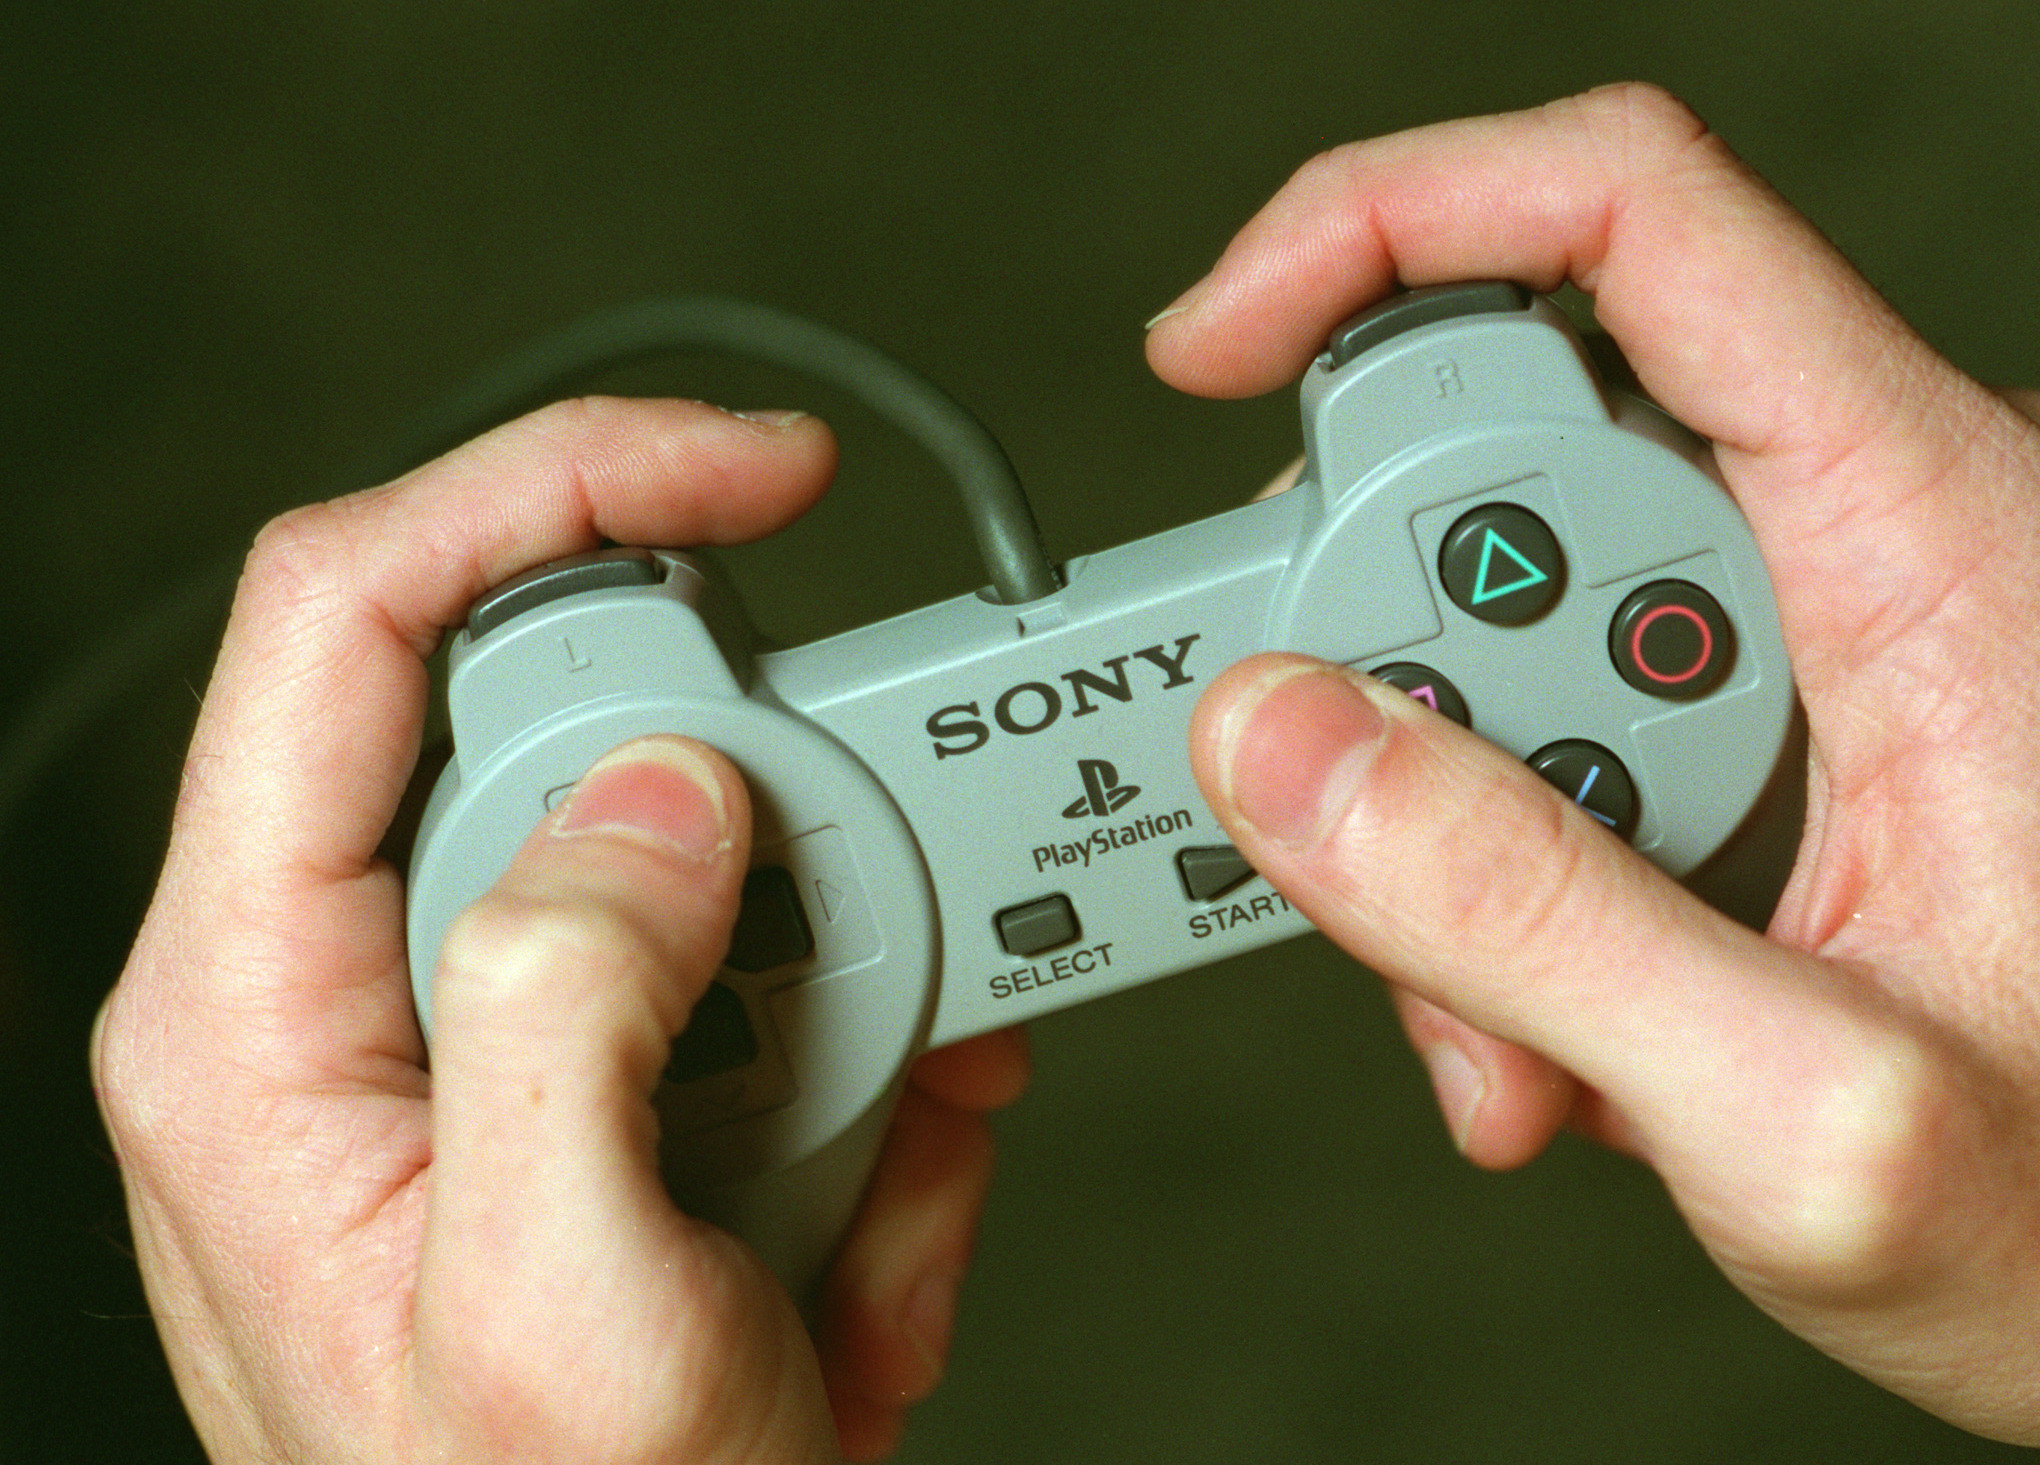 A set of hands holding a Sony PlayStation remote